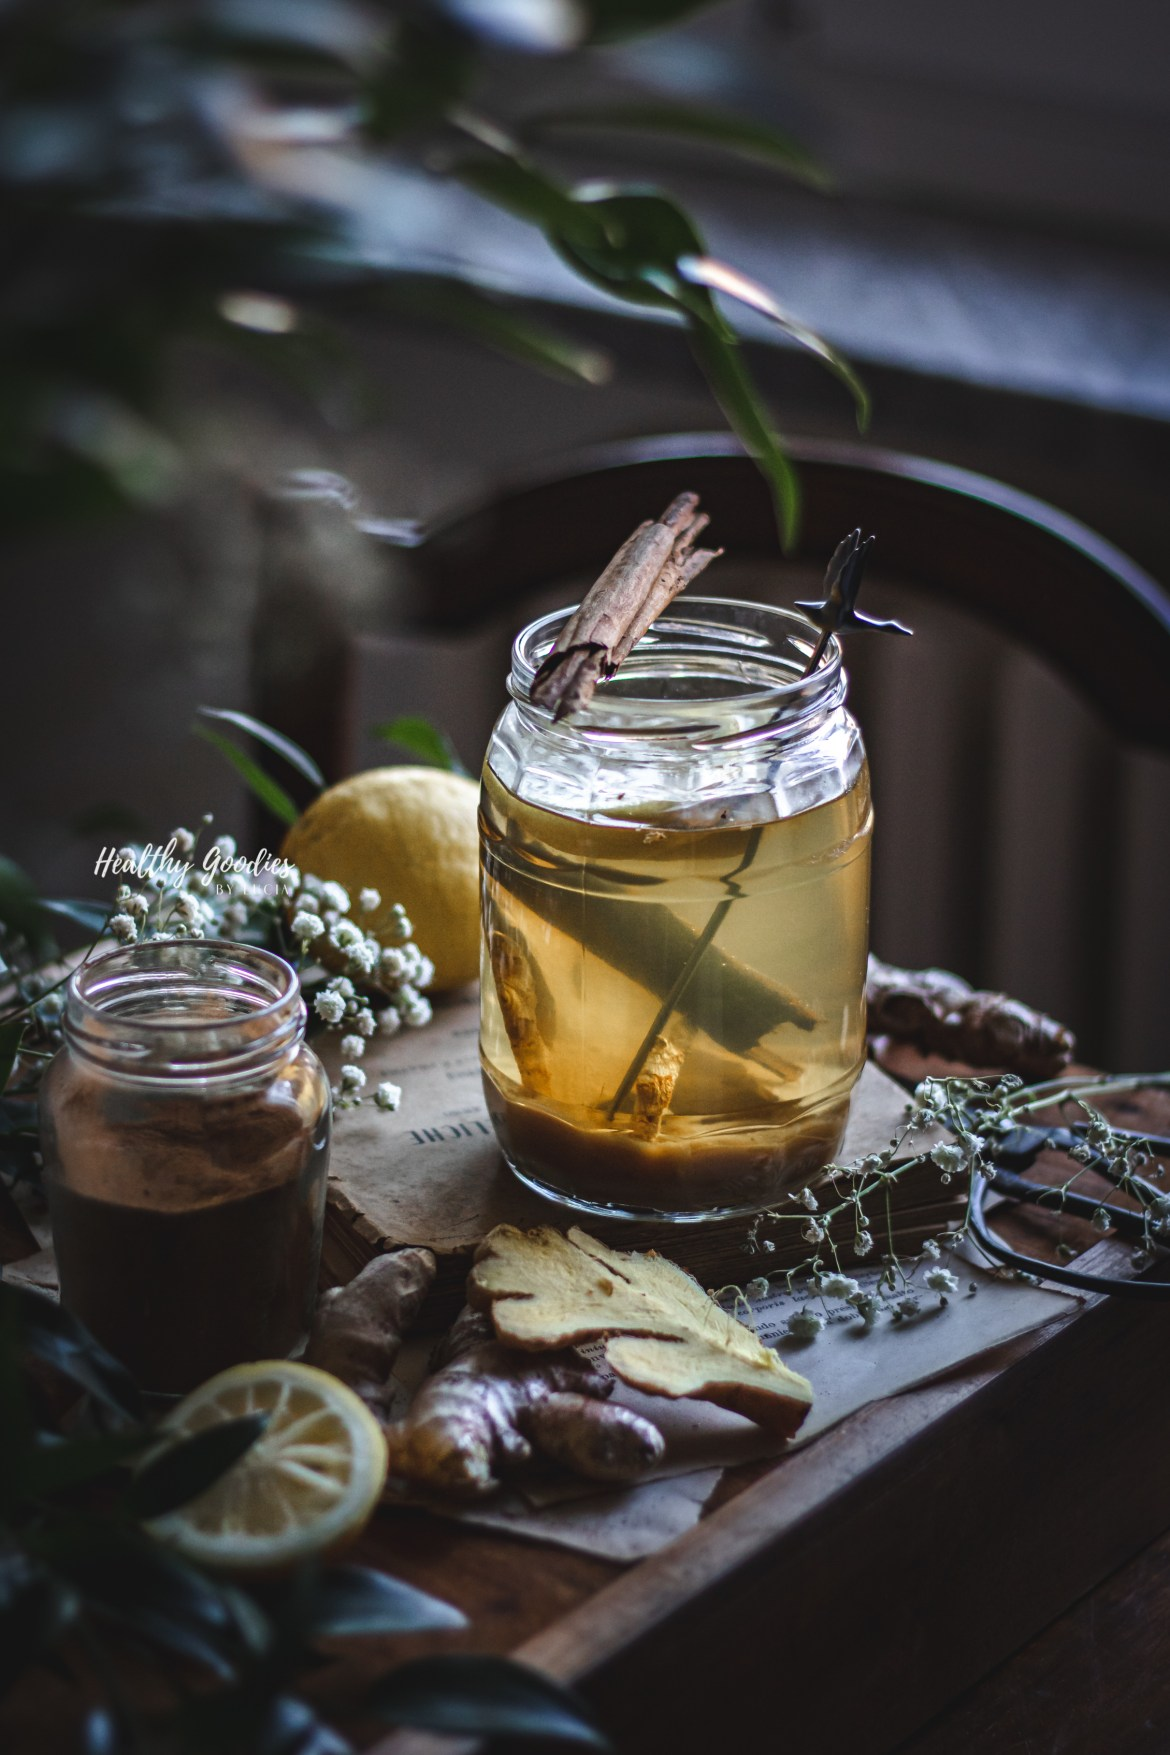 Naturally Sweetened Ginger syrup | Healthy Goodies by Lucia Marecak